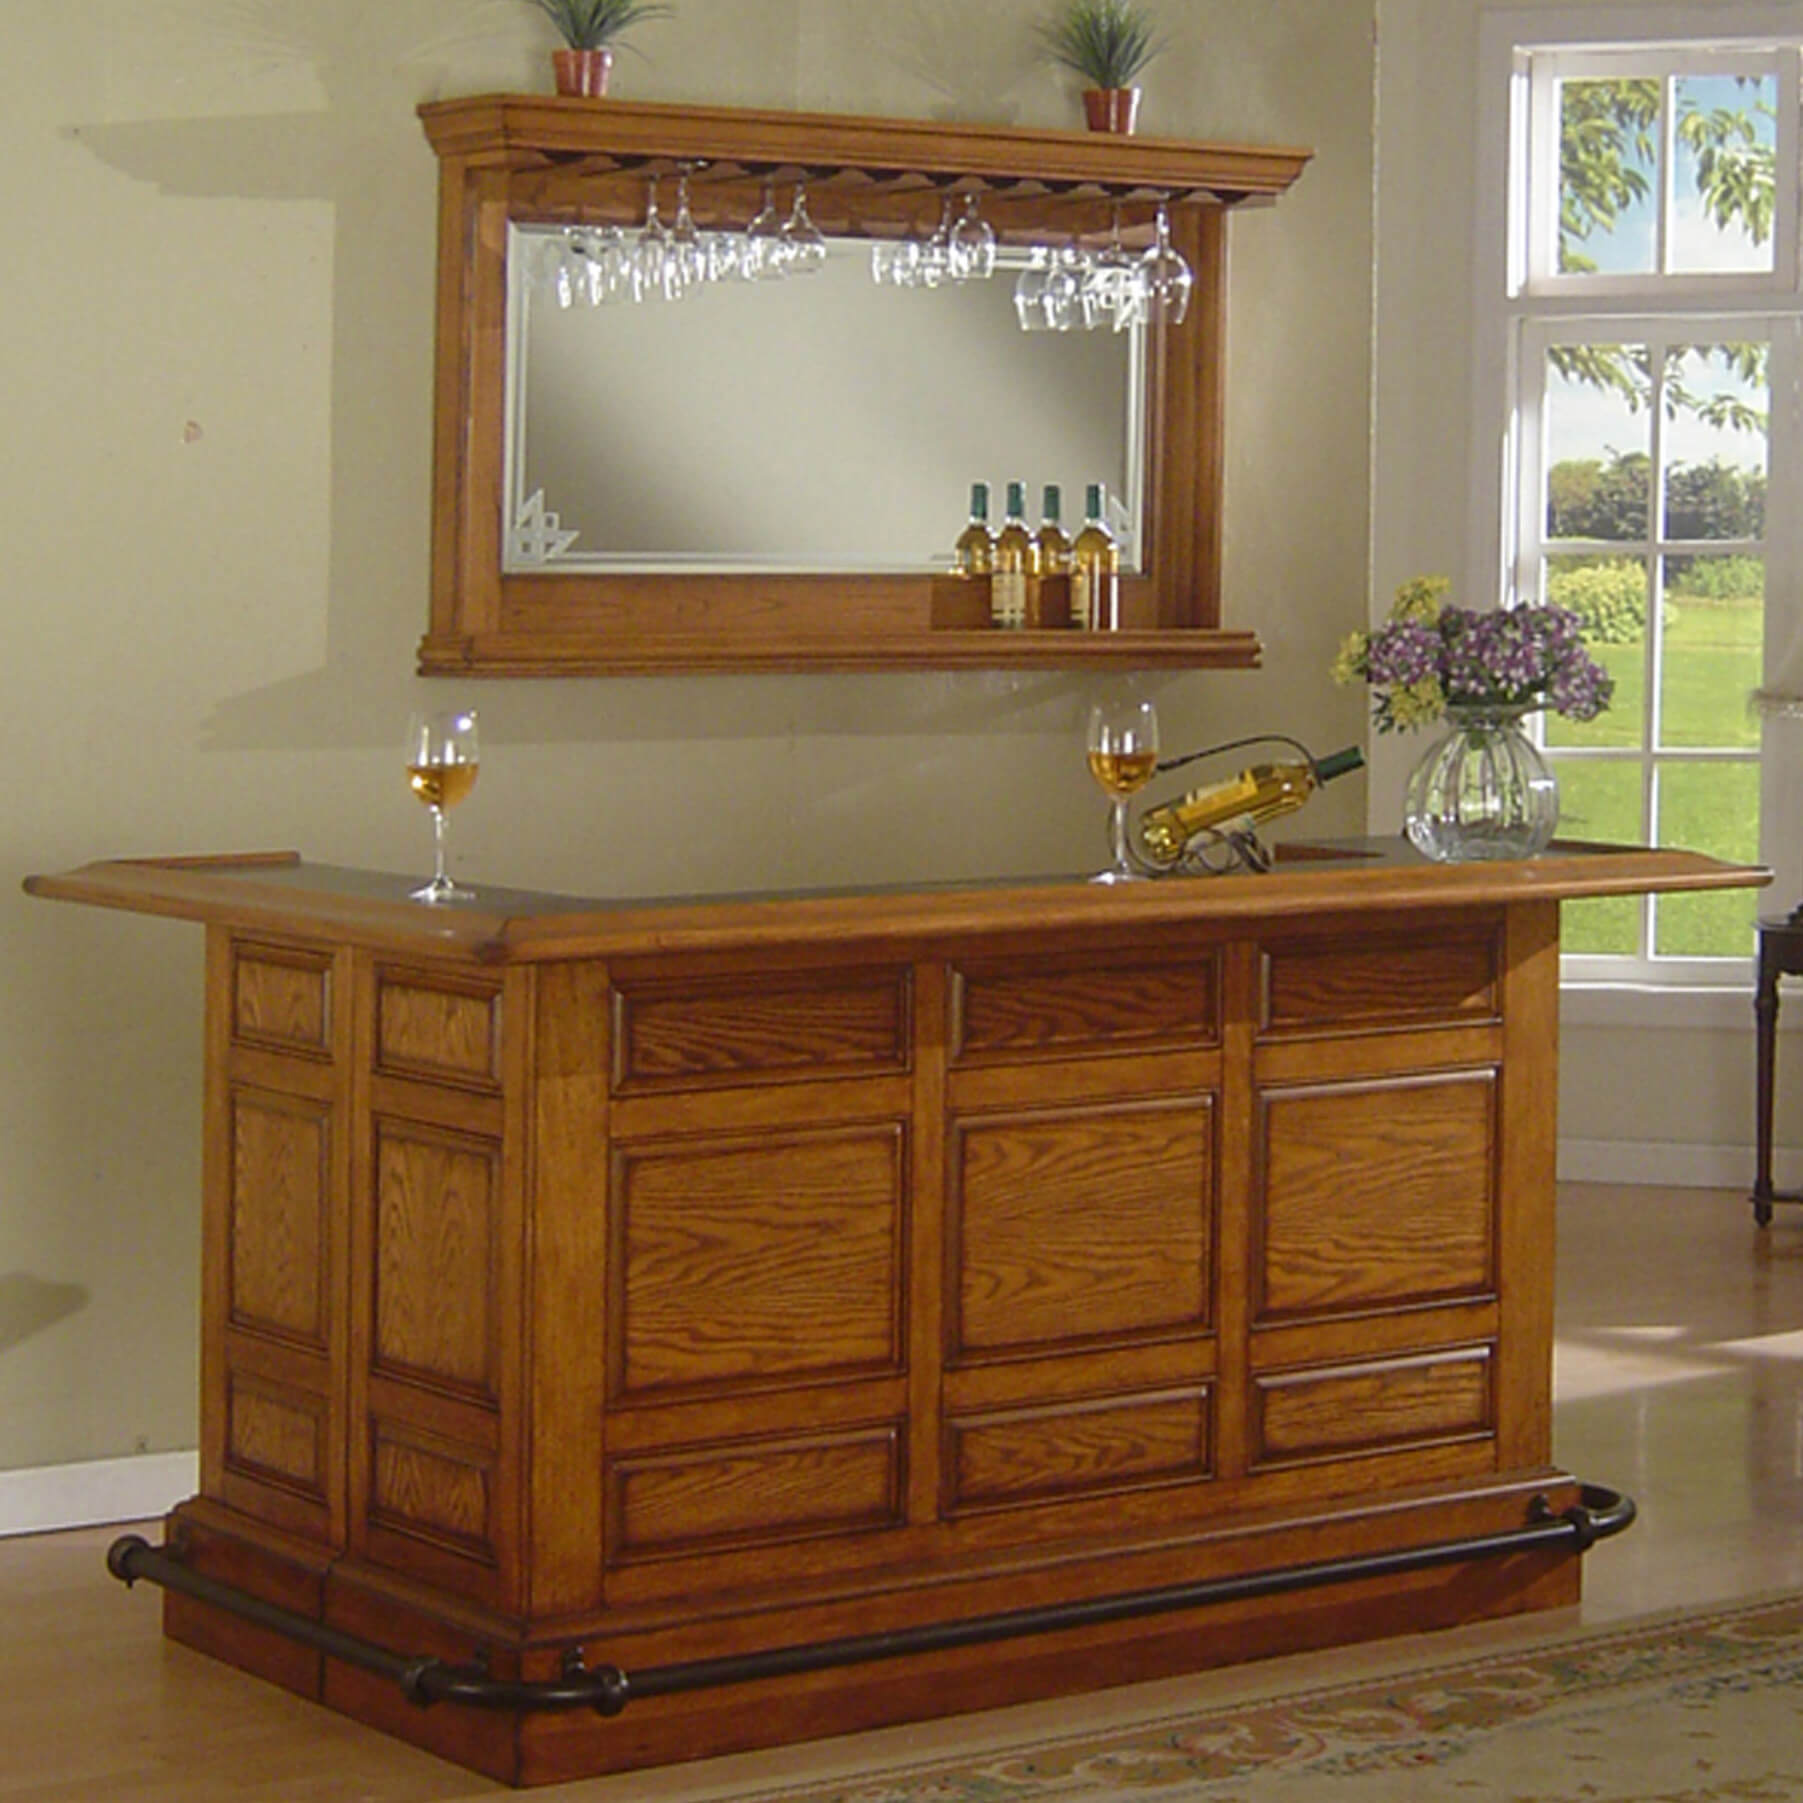 solid wood home bar with wrap around counter - Home Bar Designs For Small Spaces